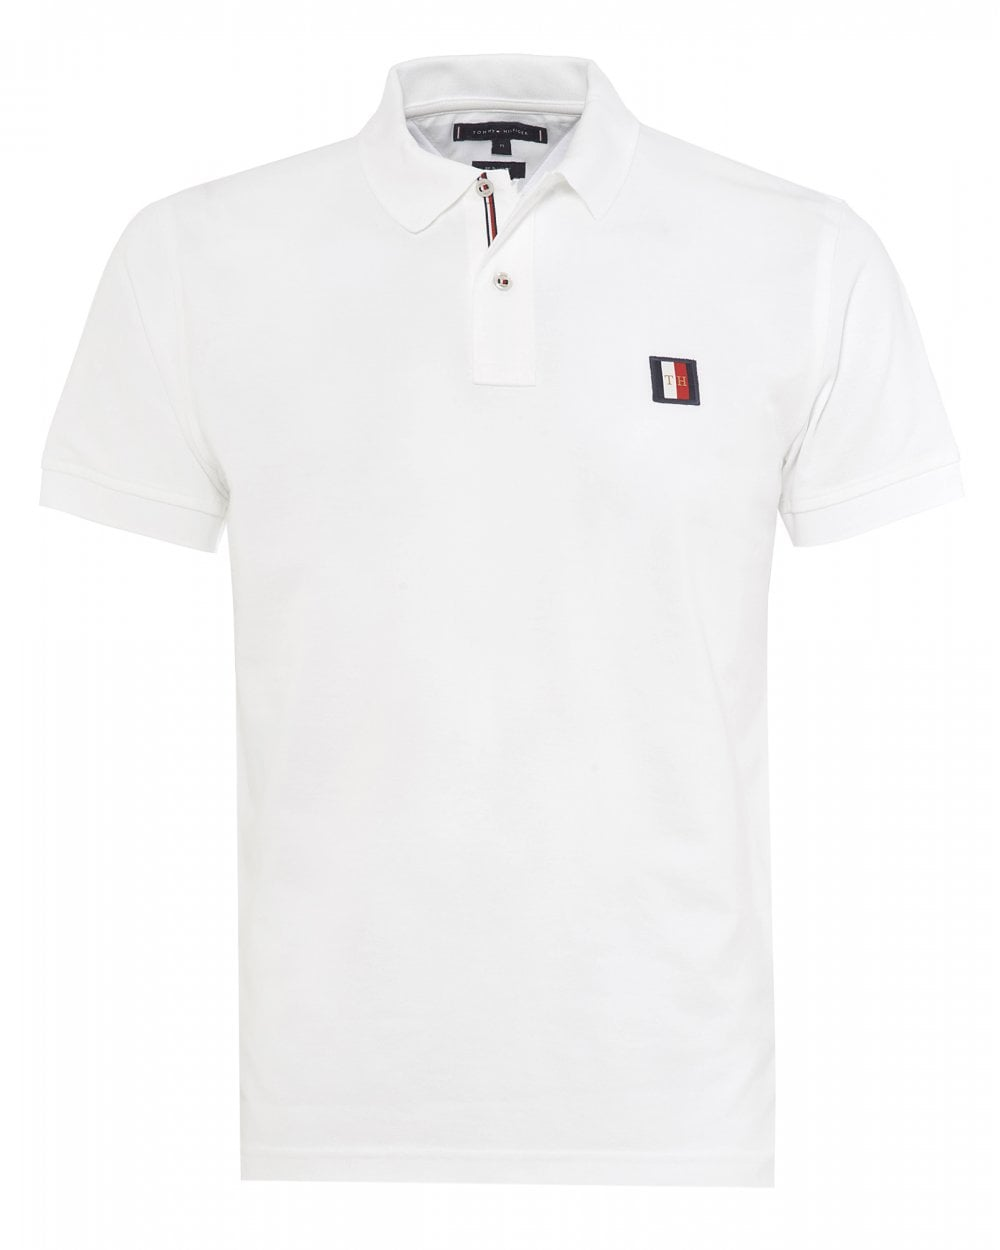 e0e4c178 Tommy Hilfiger Mens Monogram Badge White Polo Shirt